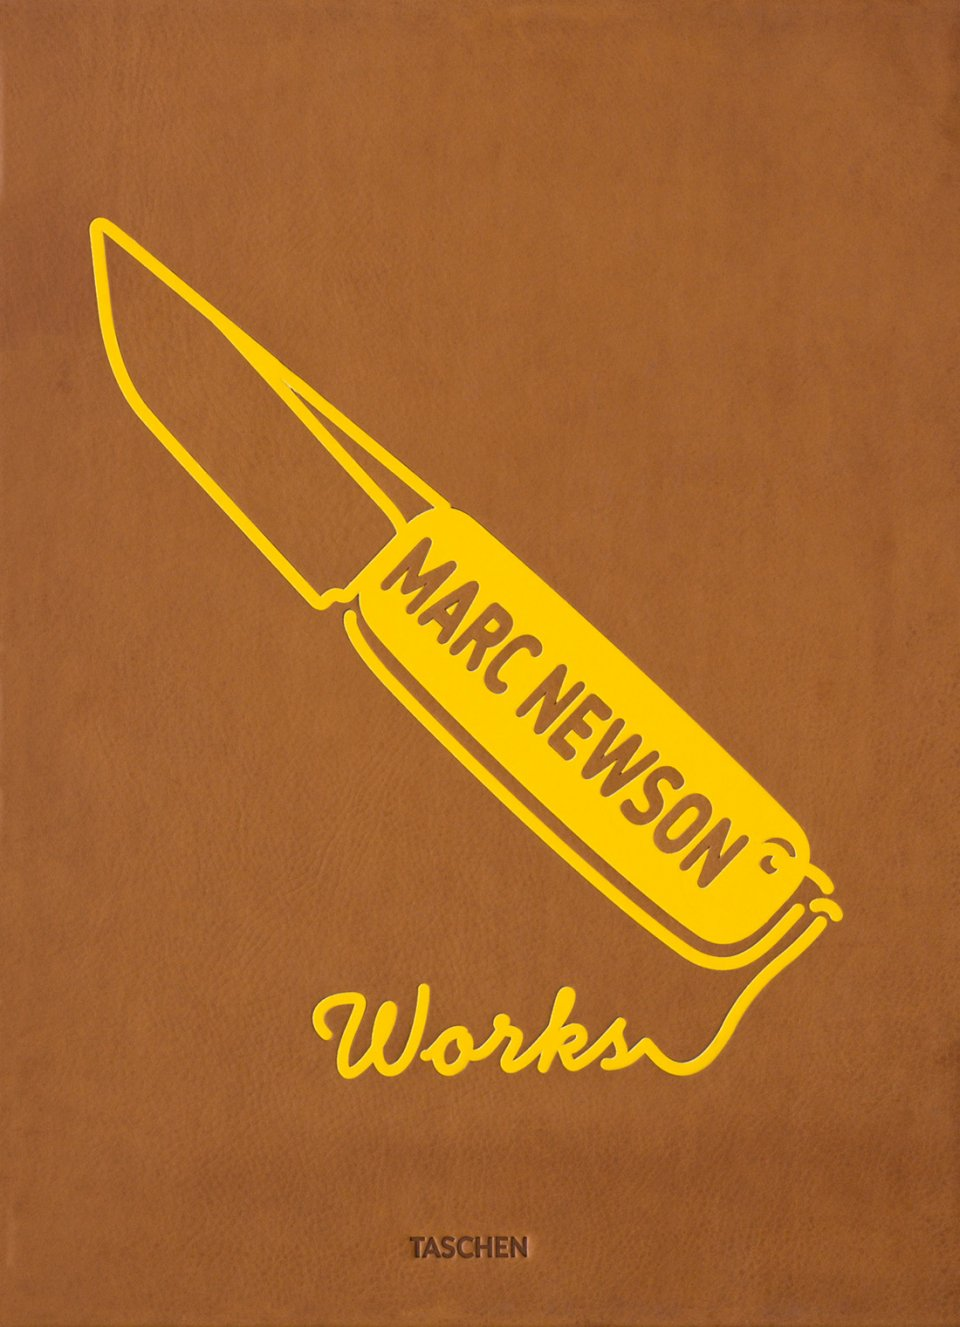 Marc Newson, Works, by TASCHEN Books